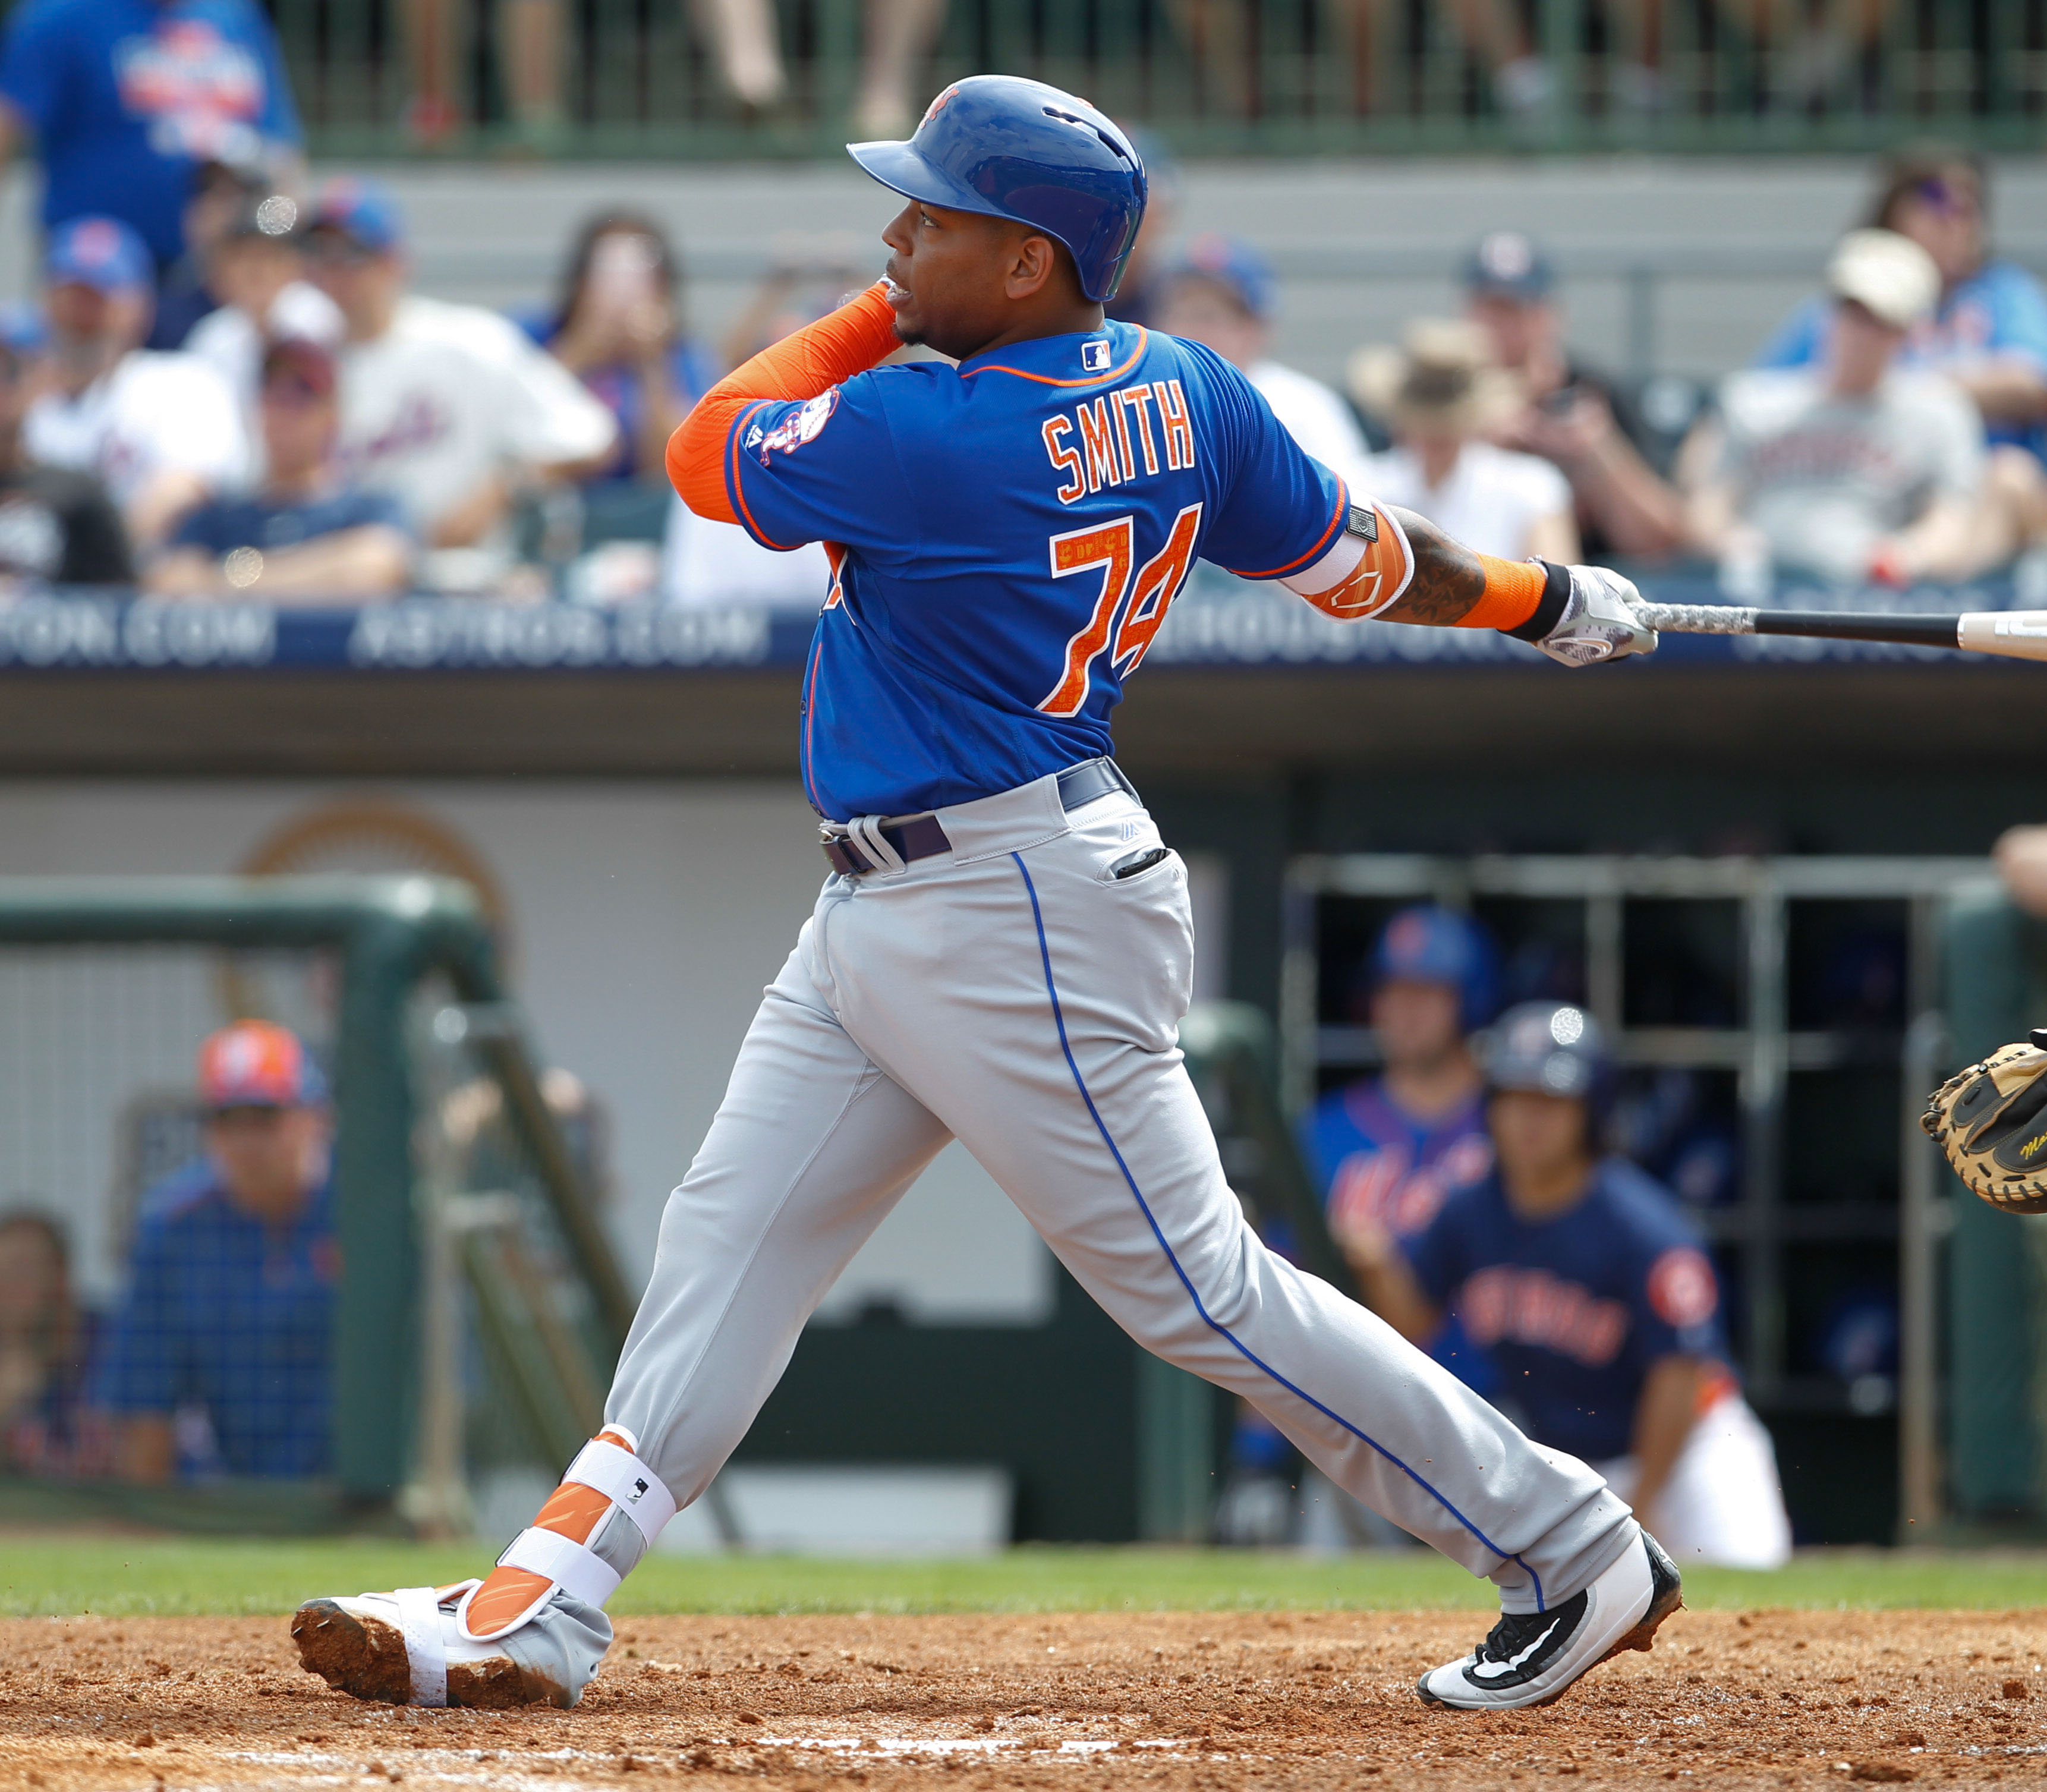 Mar 5, 2016; Kissimmee, FL, USA; New York Mets first baseman Dominic Smith (74) bats during a spring training baseball game against the Houston Astros at Osceola County Stadium. Mandatory Credit: Reinhold Matay-USA TODAY Sports